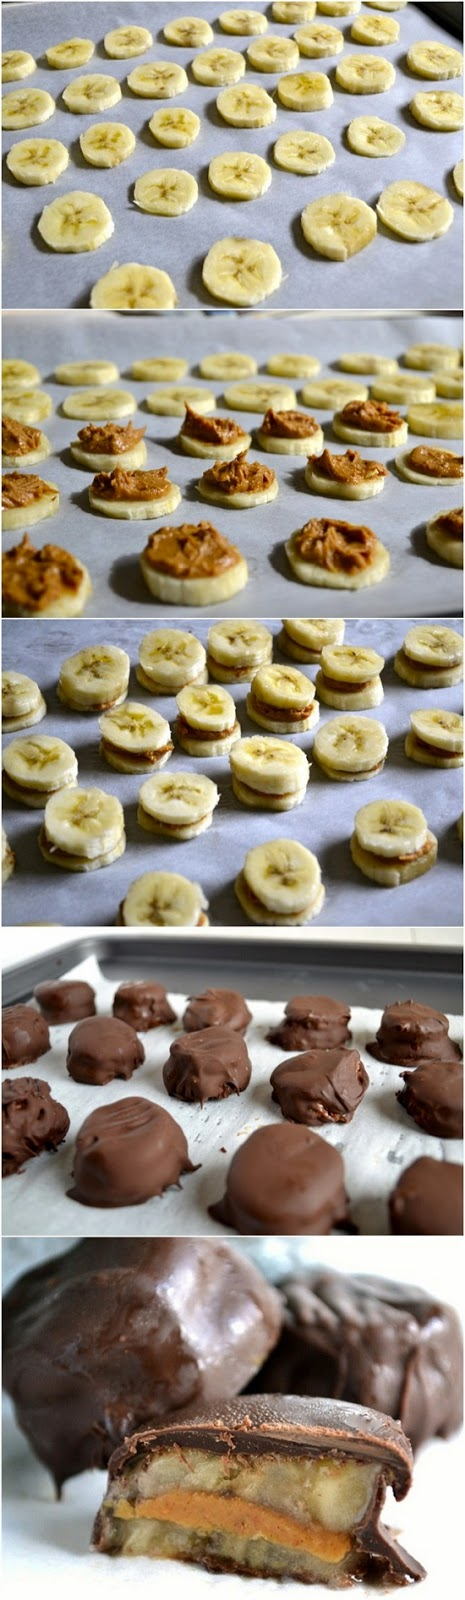 Chocolate-Peanut-Butter-Banana-Bites-Recipe